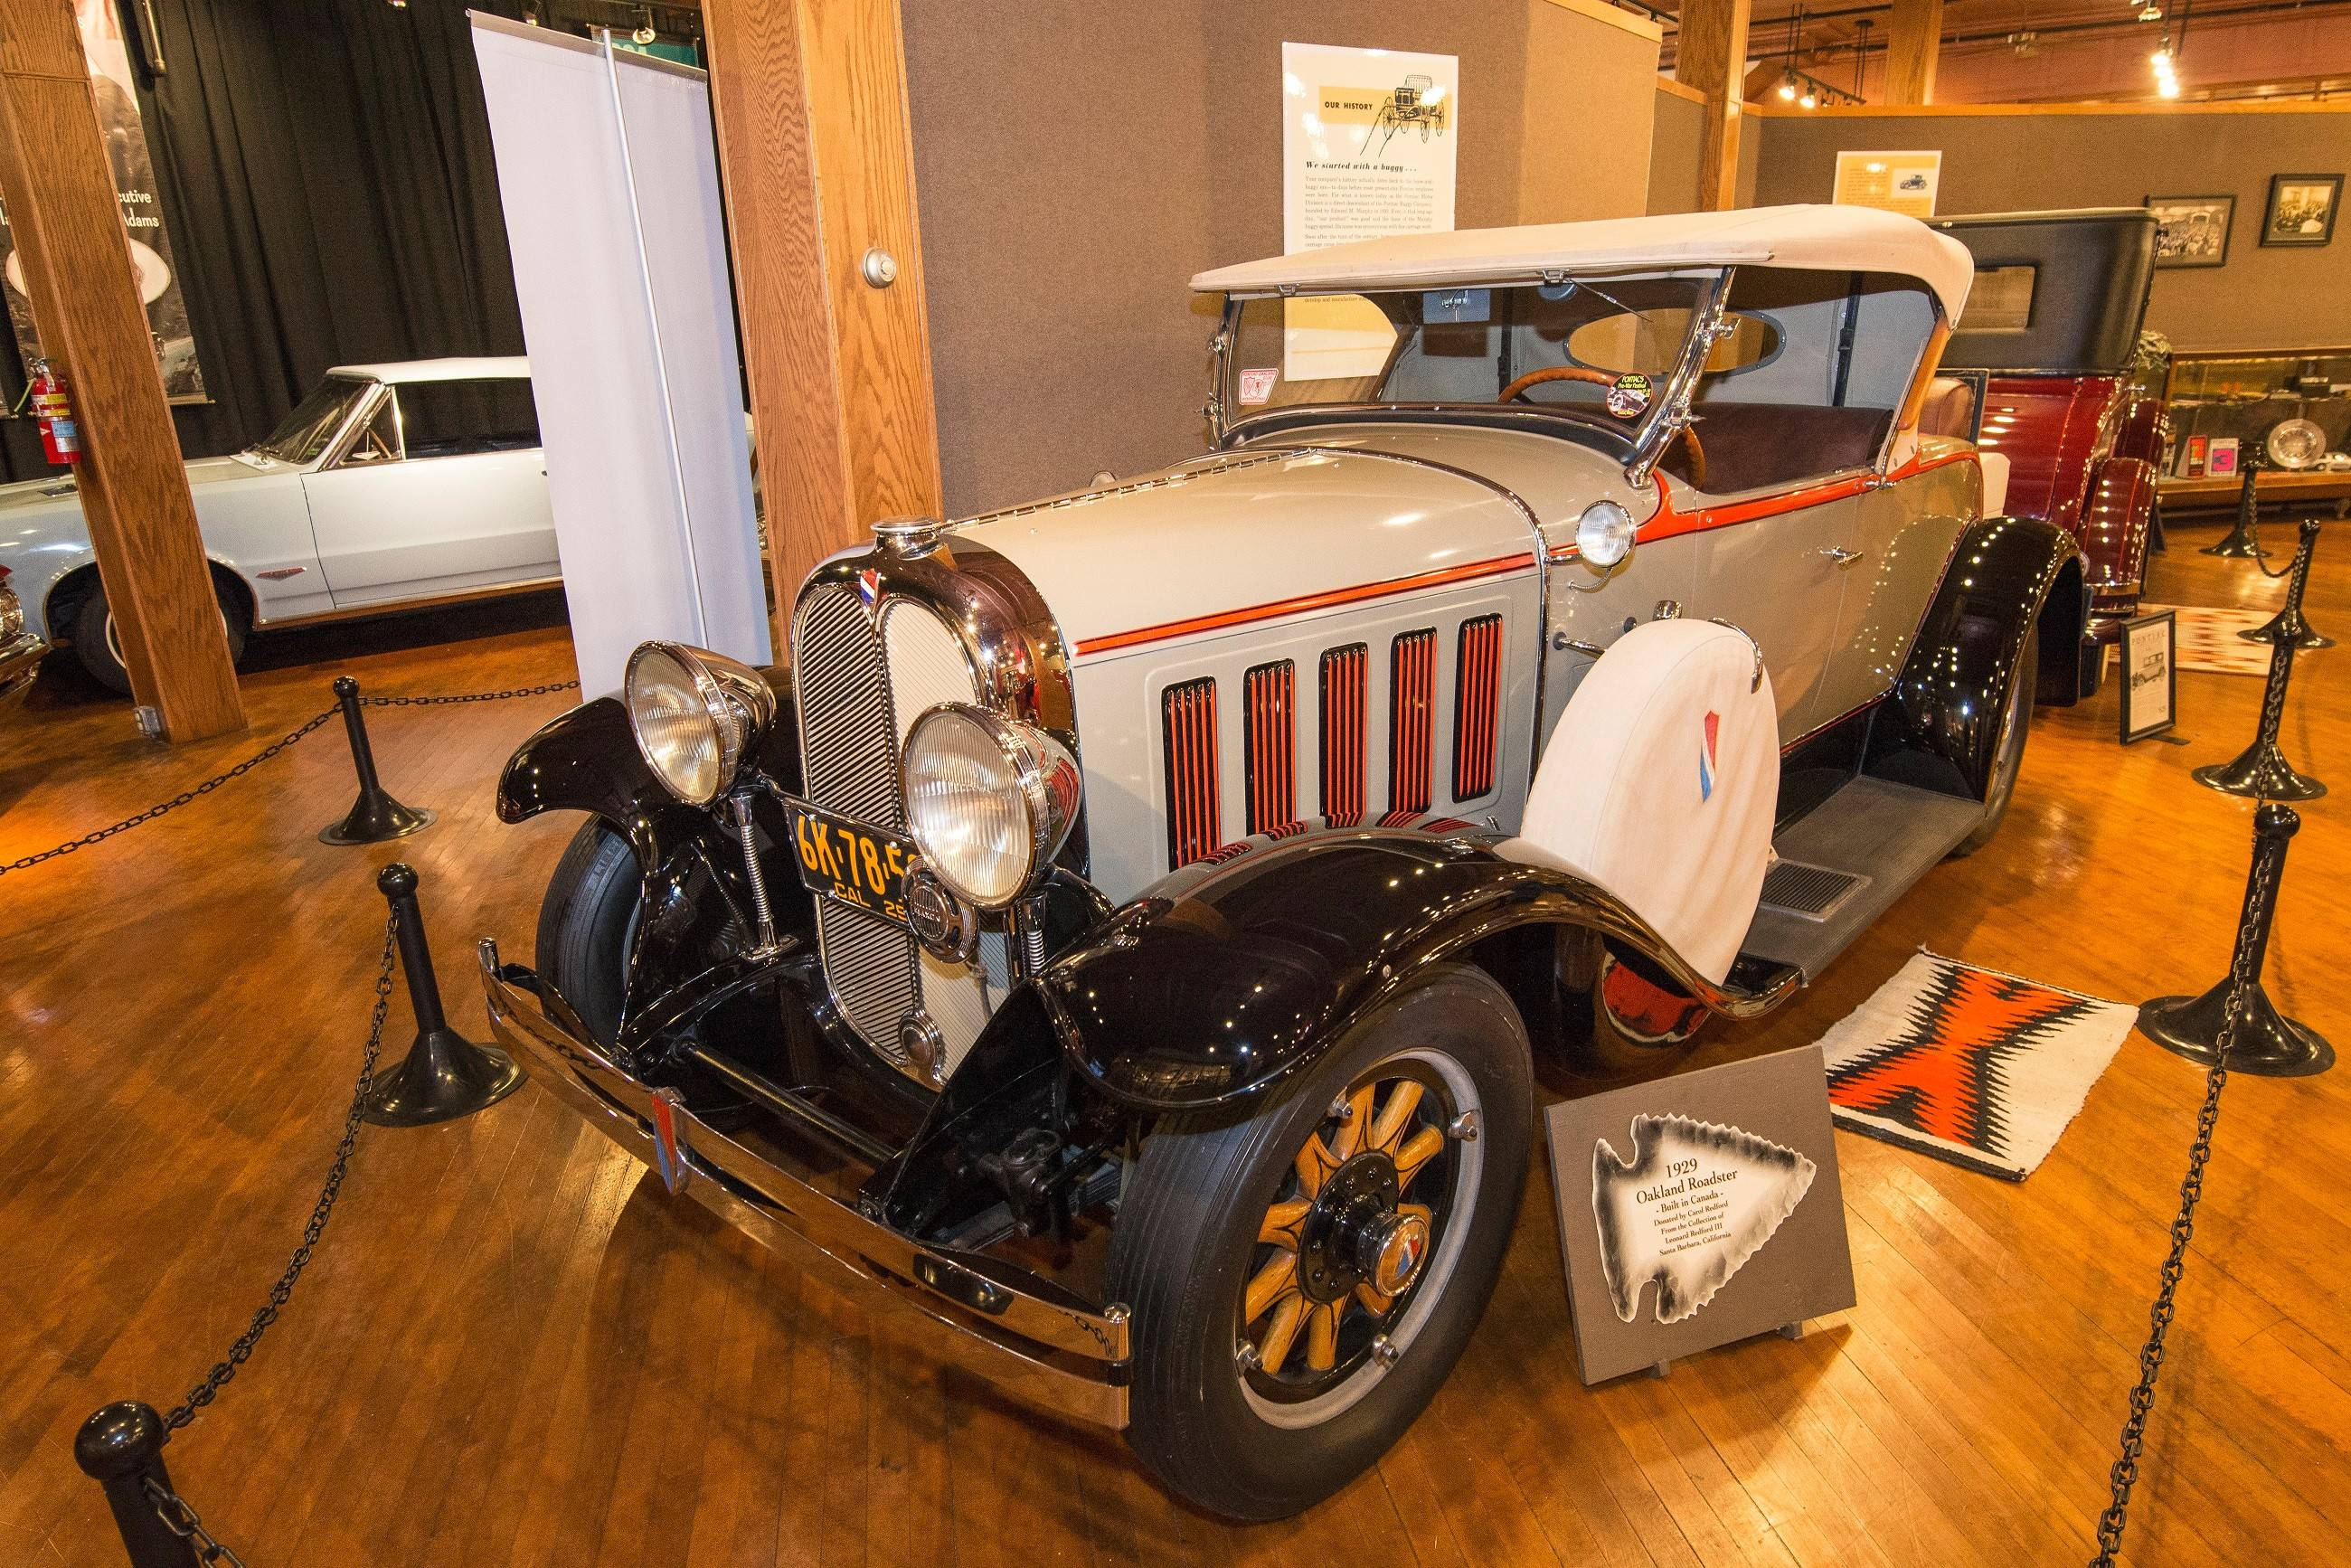 A 1929 Oakland Roadster is on display. The Oakland Motor Car Co. made vehicles in Pontiac, Michigan. It later became the Oakland Motors Division of GM.